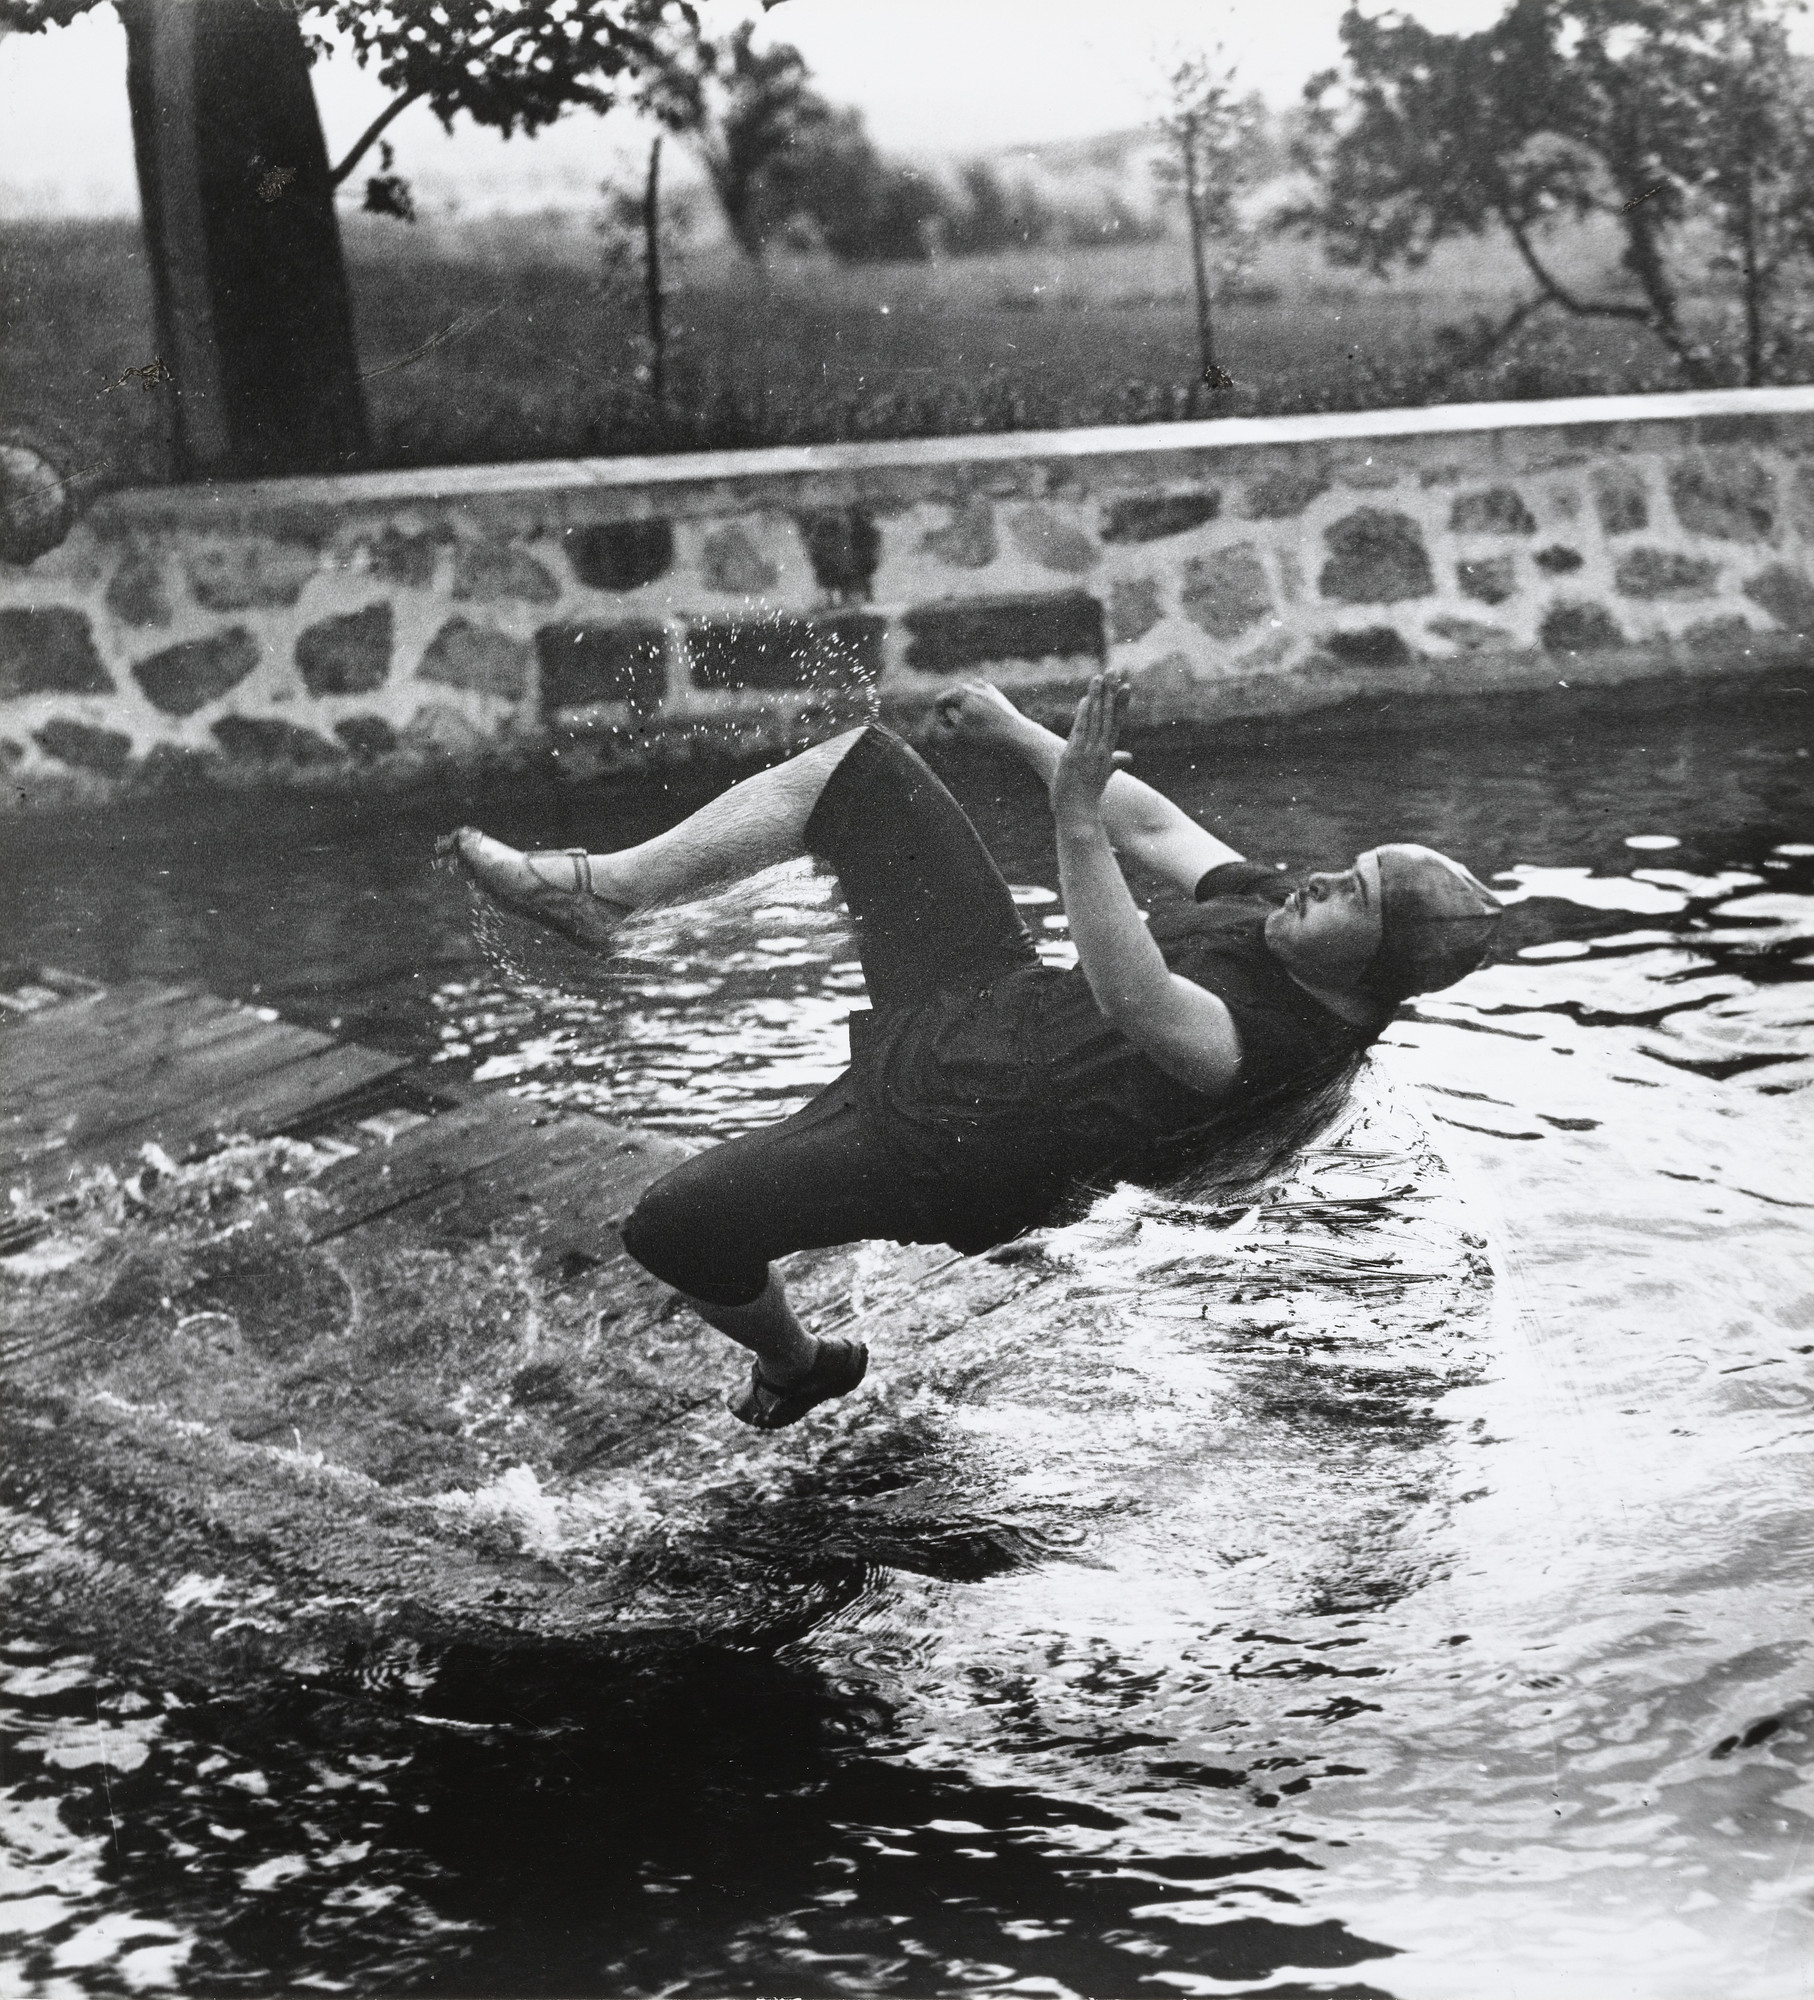 Jacques-Henri Lartigue. Swimming Pool at Château de Rouzat, My Cousin Jean Haguet. 1910